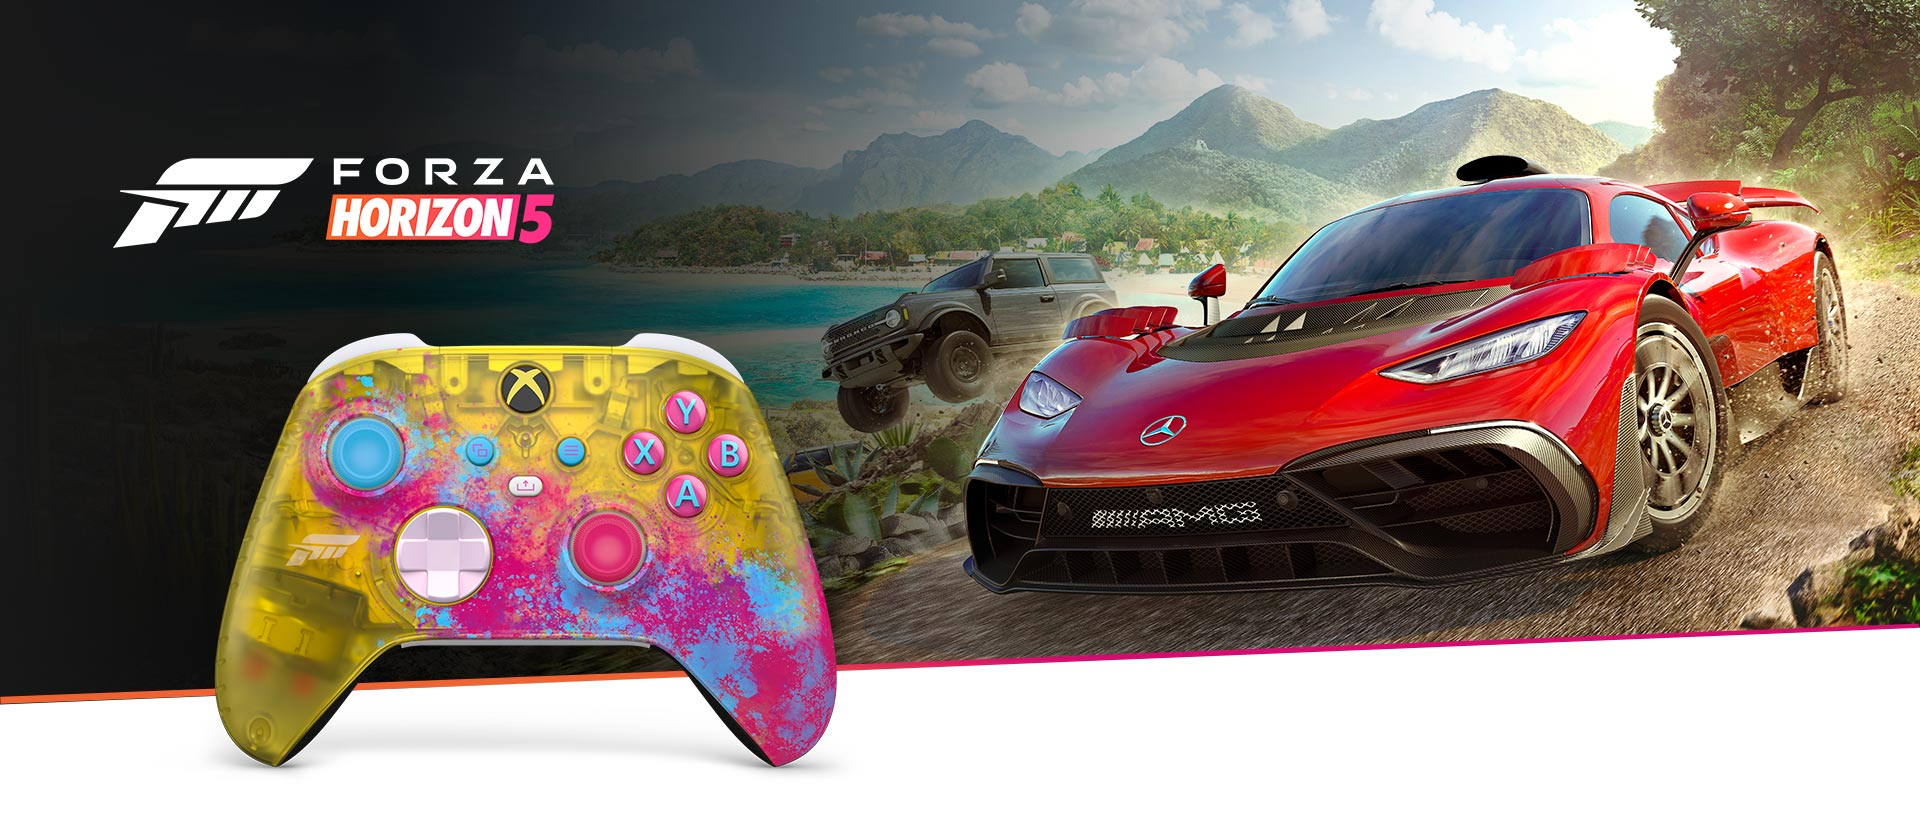 Xbox Wireless Controller Forza Horizon 5 in front of a close-up of the controller